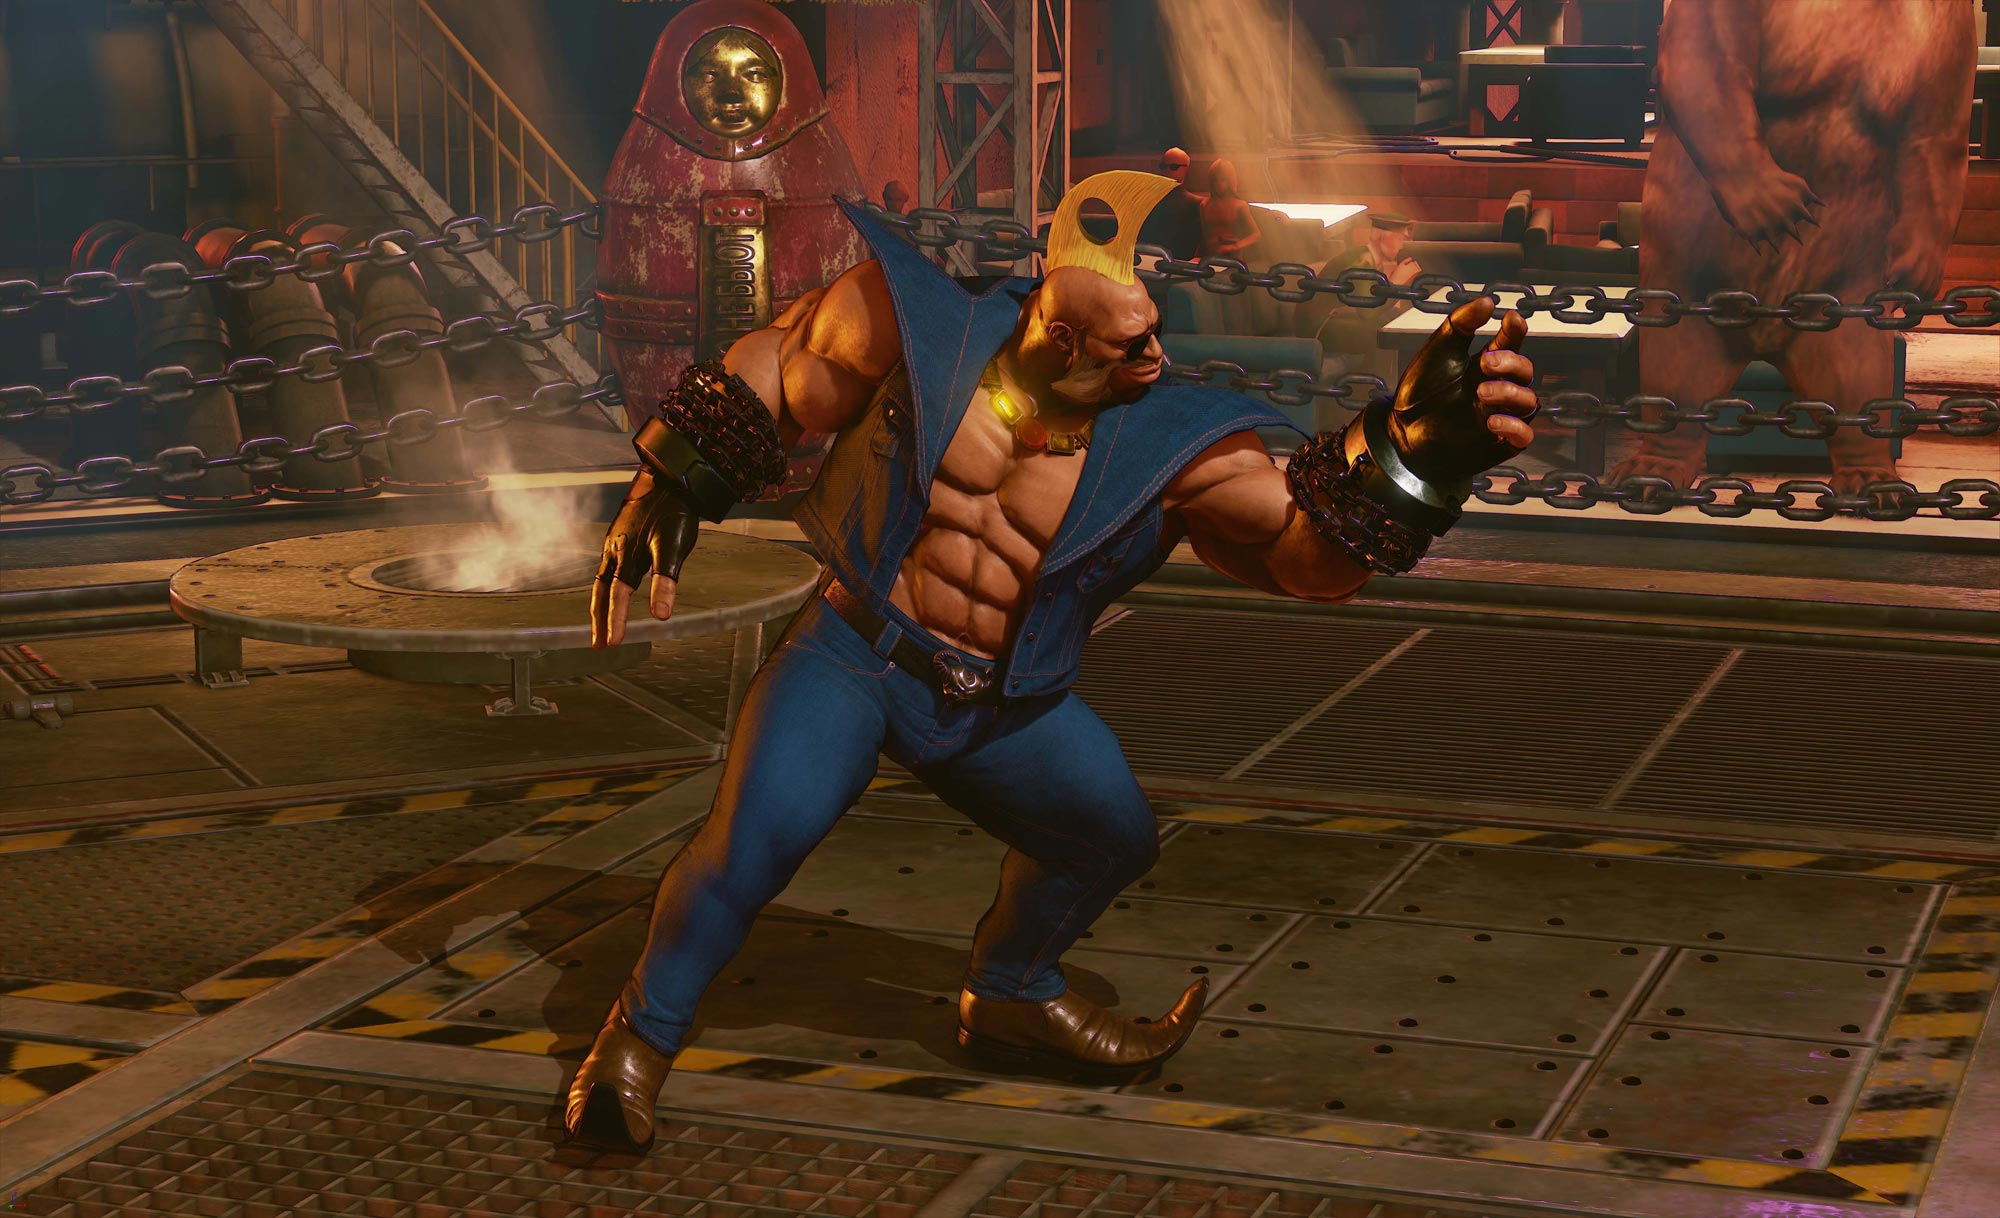 New Street Fighter 5 costumes 5 out of 10 image gallery